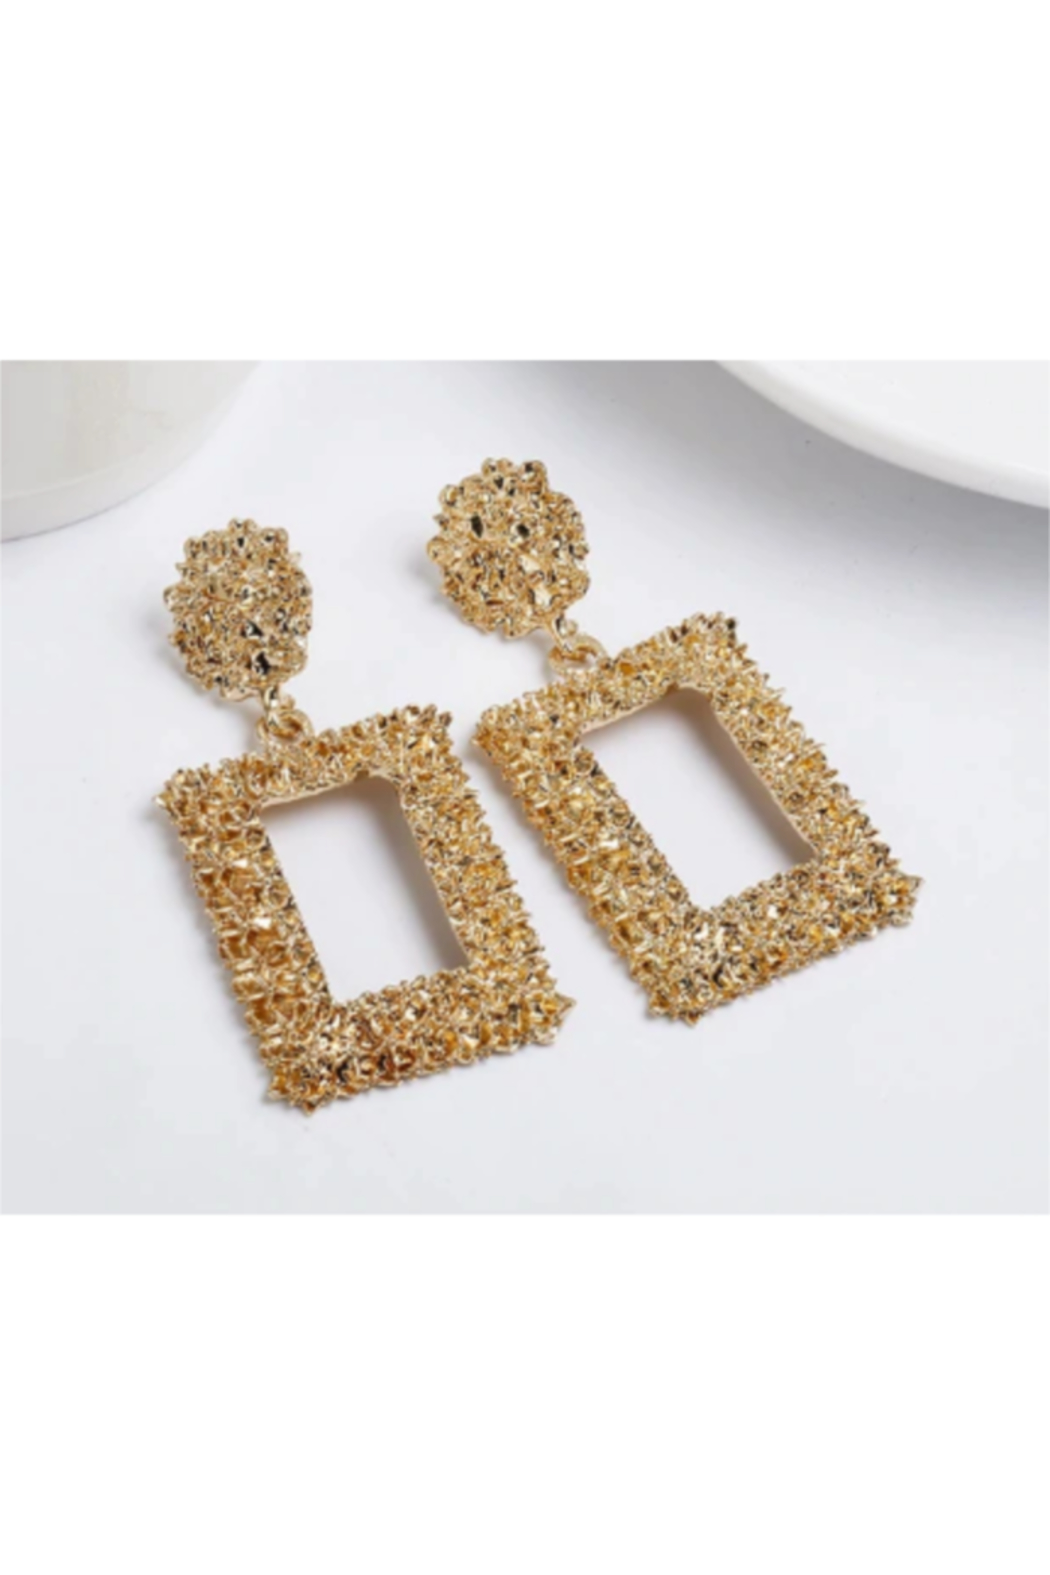 The Birds Nest GOLD NUGGET STATEMENT EARRINGS - Main Image